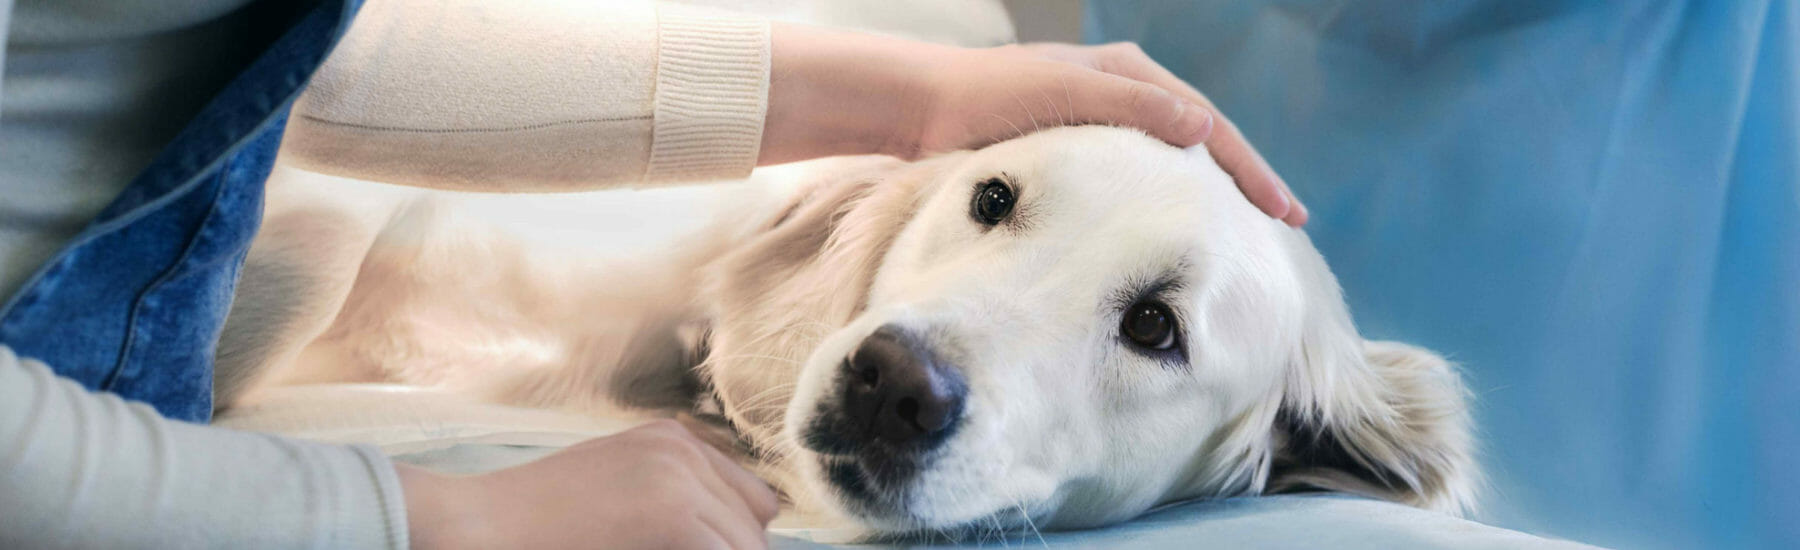 White dog laying on side with owners head resting on dog's head